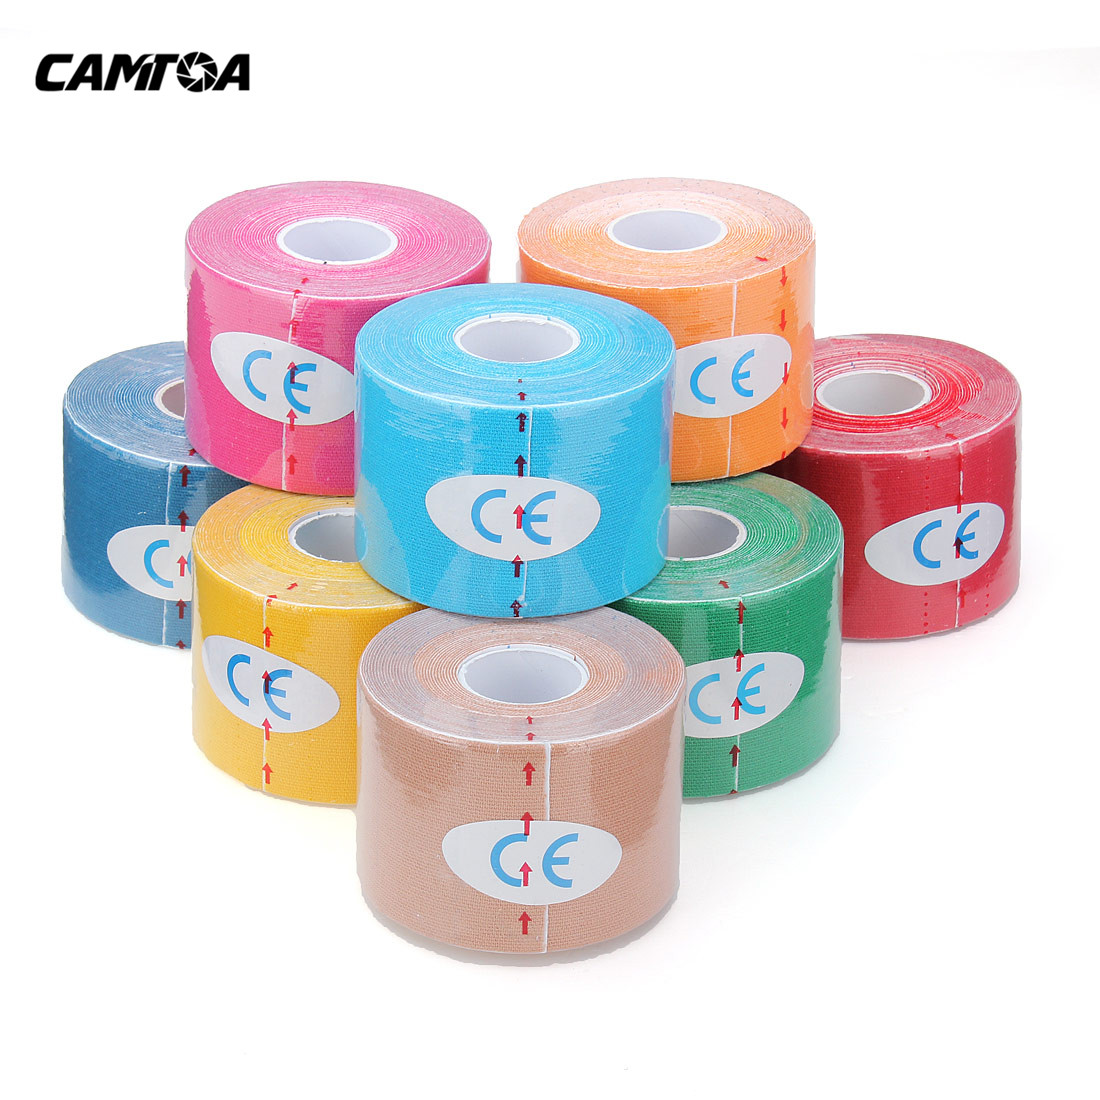 NEW 1 Roll Waterproof breathable Sports Kinesiology Muscles Care Fitness Athletic Health Cotton Elastic Adhesive Tape 5M * 5CM